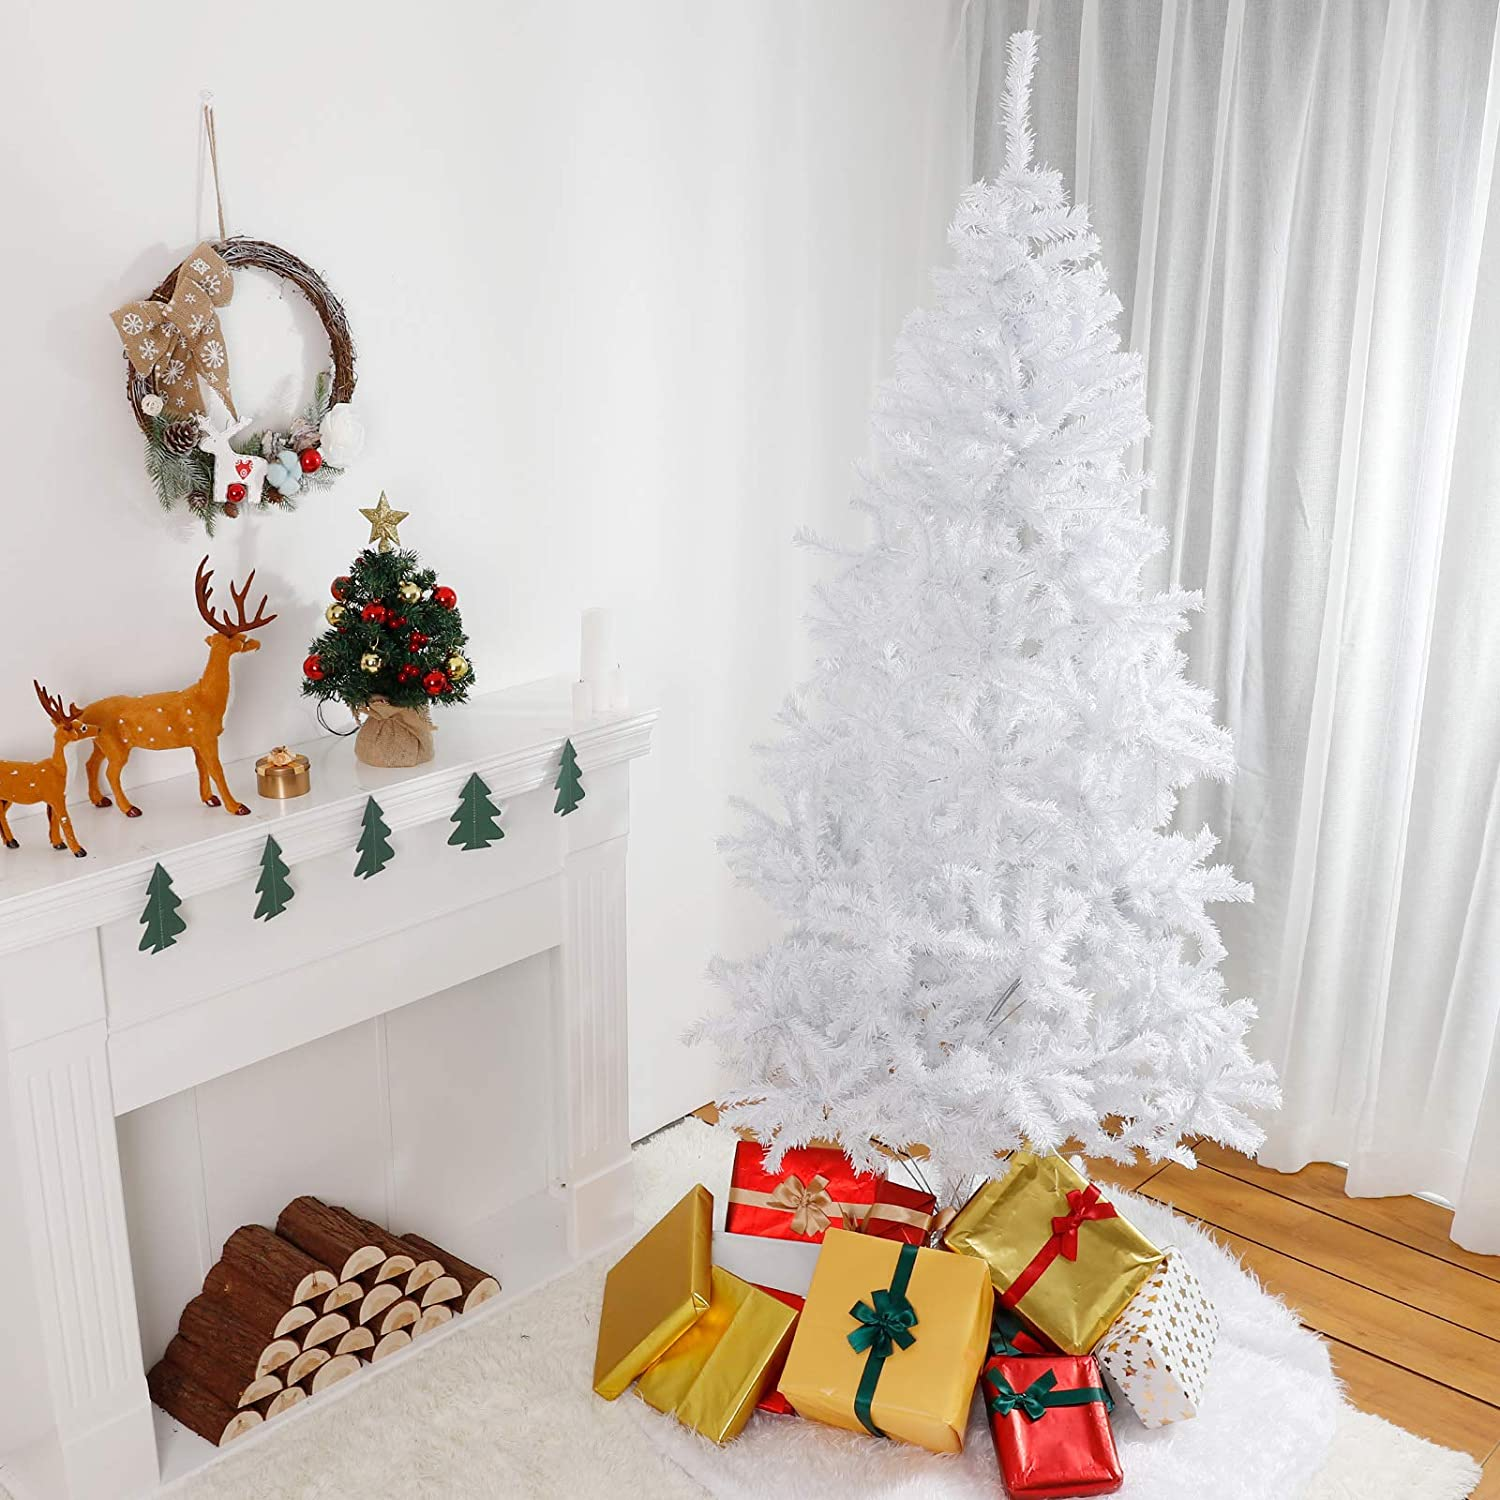 Yorbay Artificial Christmas Tree with Metal Stand White PVC Xmas Tree for Christmas Decoration Party Home Indoor Outdoor Reusable 180cm 6ft